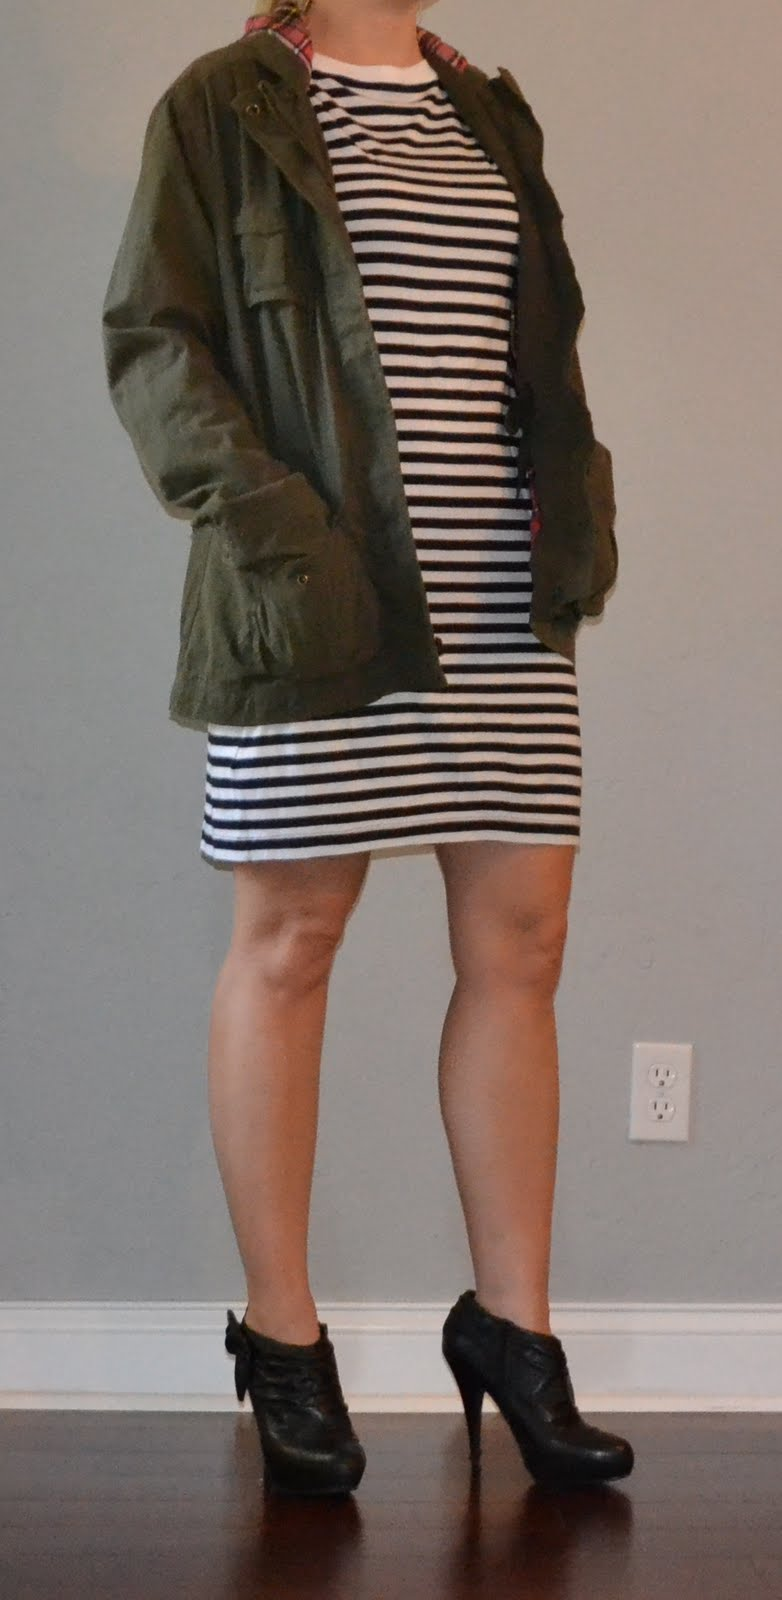 ea589d4cd992 outfit post  military jacket